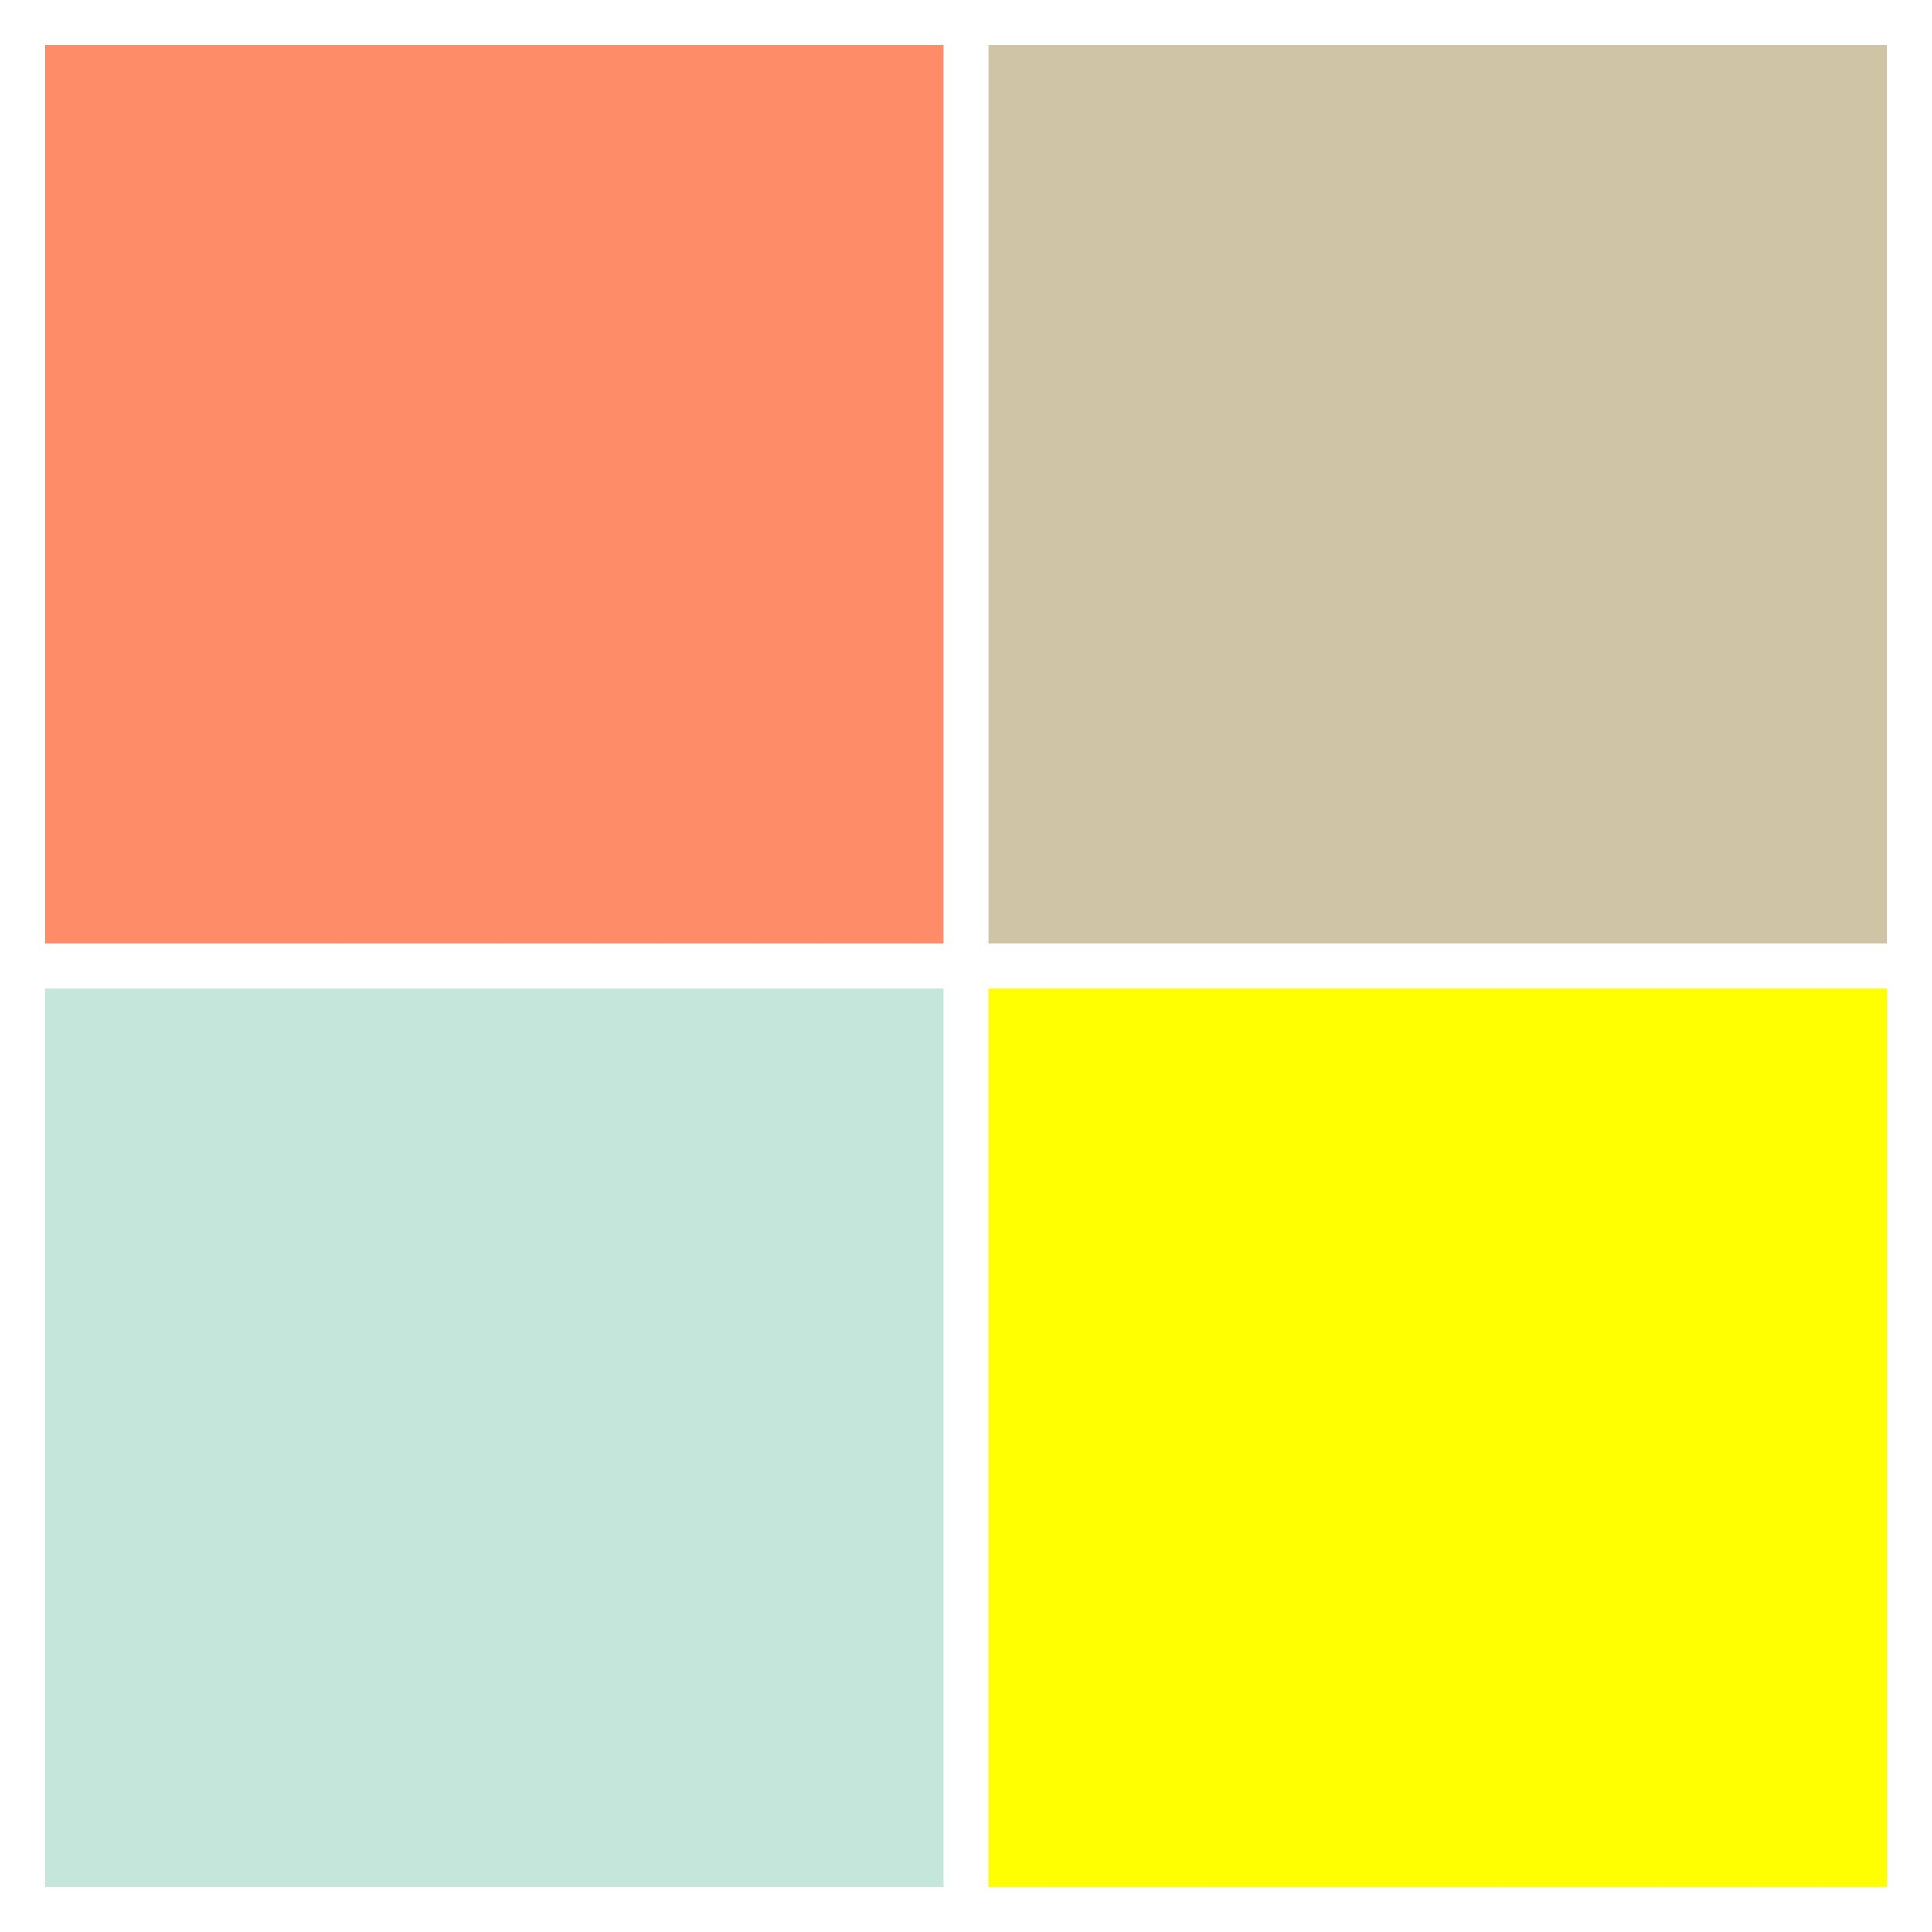 Color Palette For Uni Gender Neutral Nursery Salmon C Tan Beige Mint Seafoam Green Sunshine Cheery Yellow